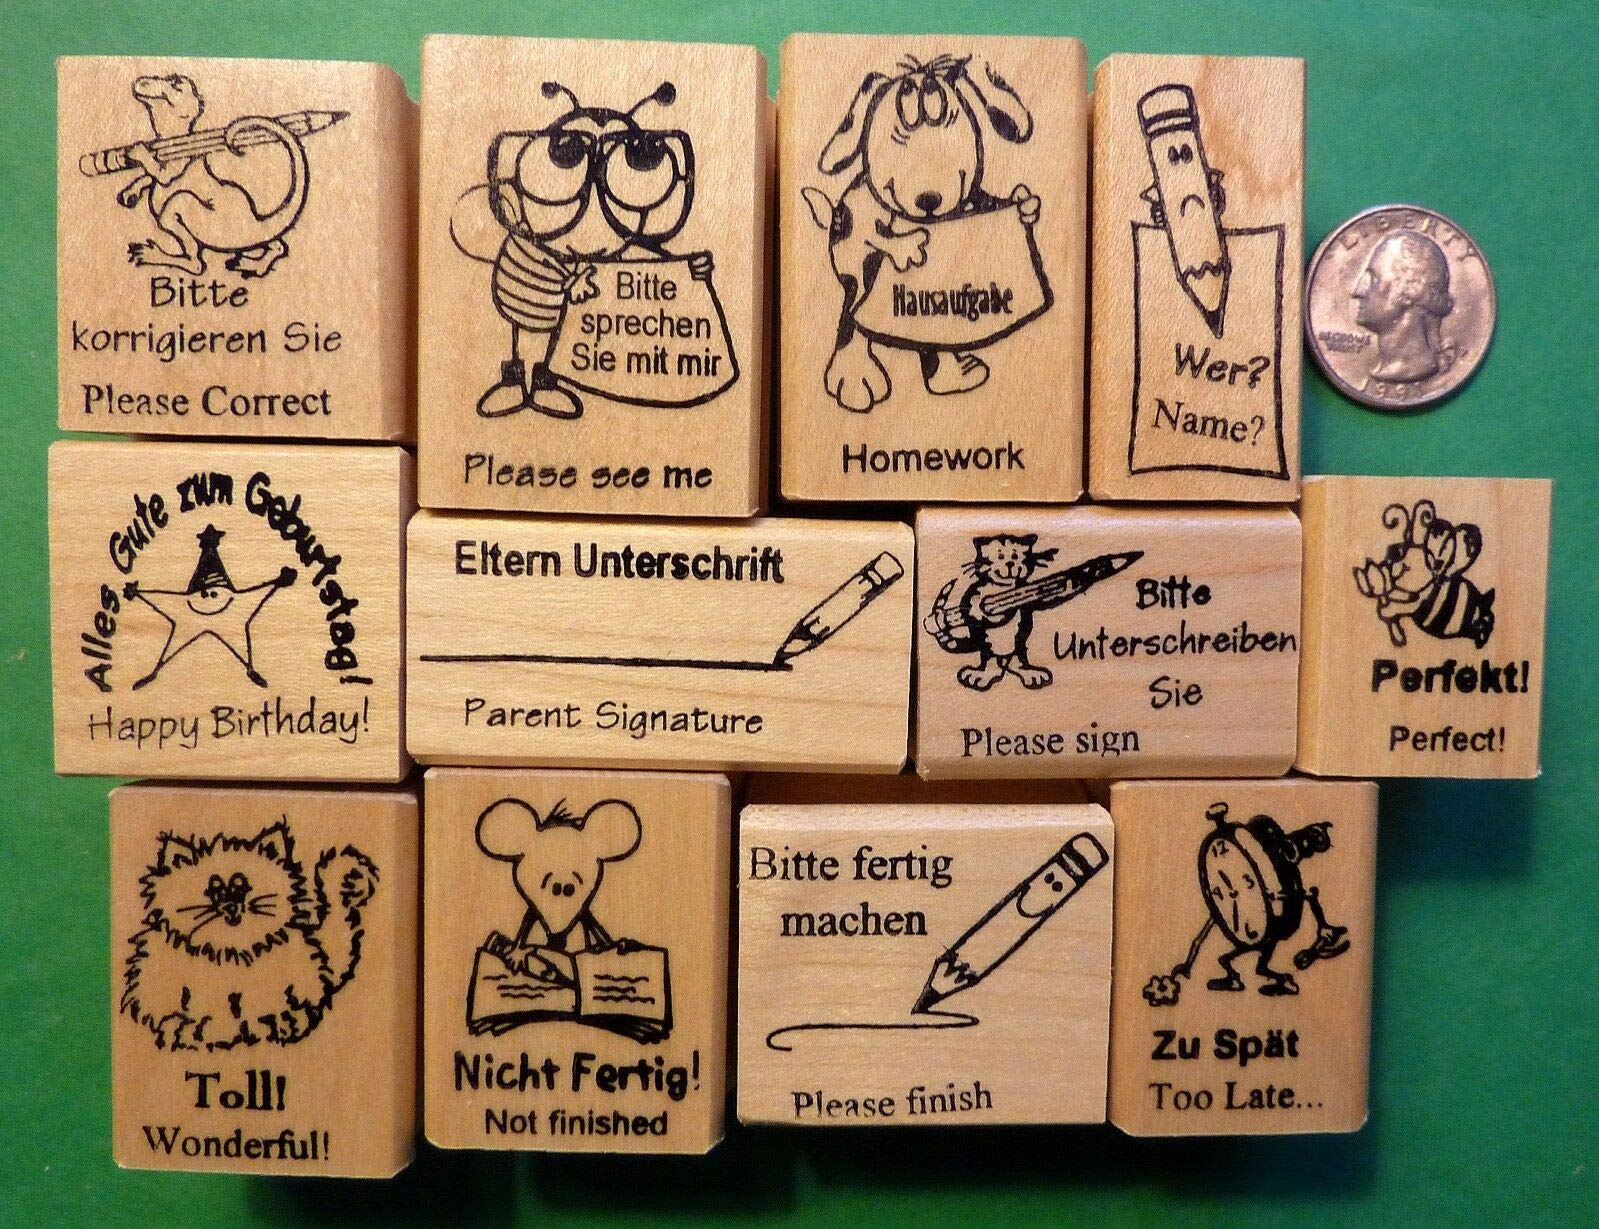 Teacher's German/English 12-Piece Rubber Stamp Assortment - Rubber Stamp Wood Carving Blocks by Wooden Stamps